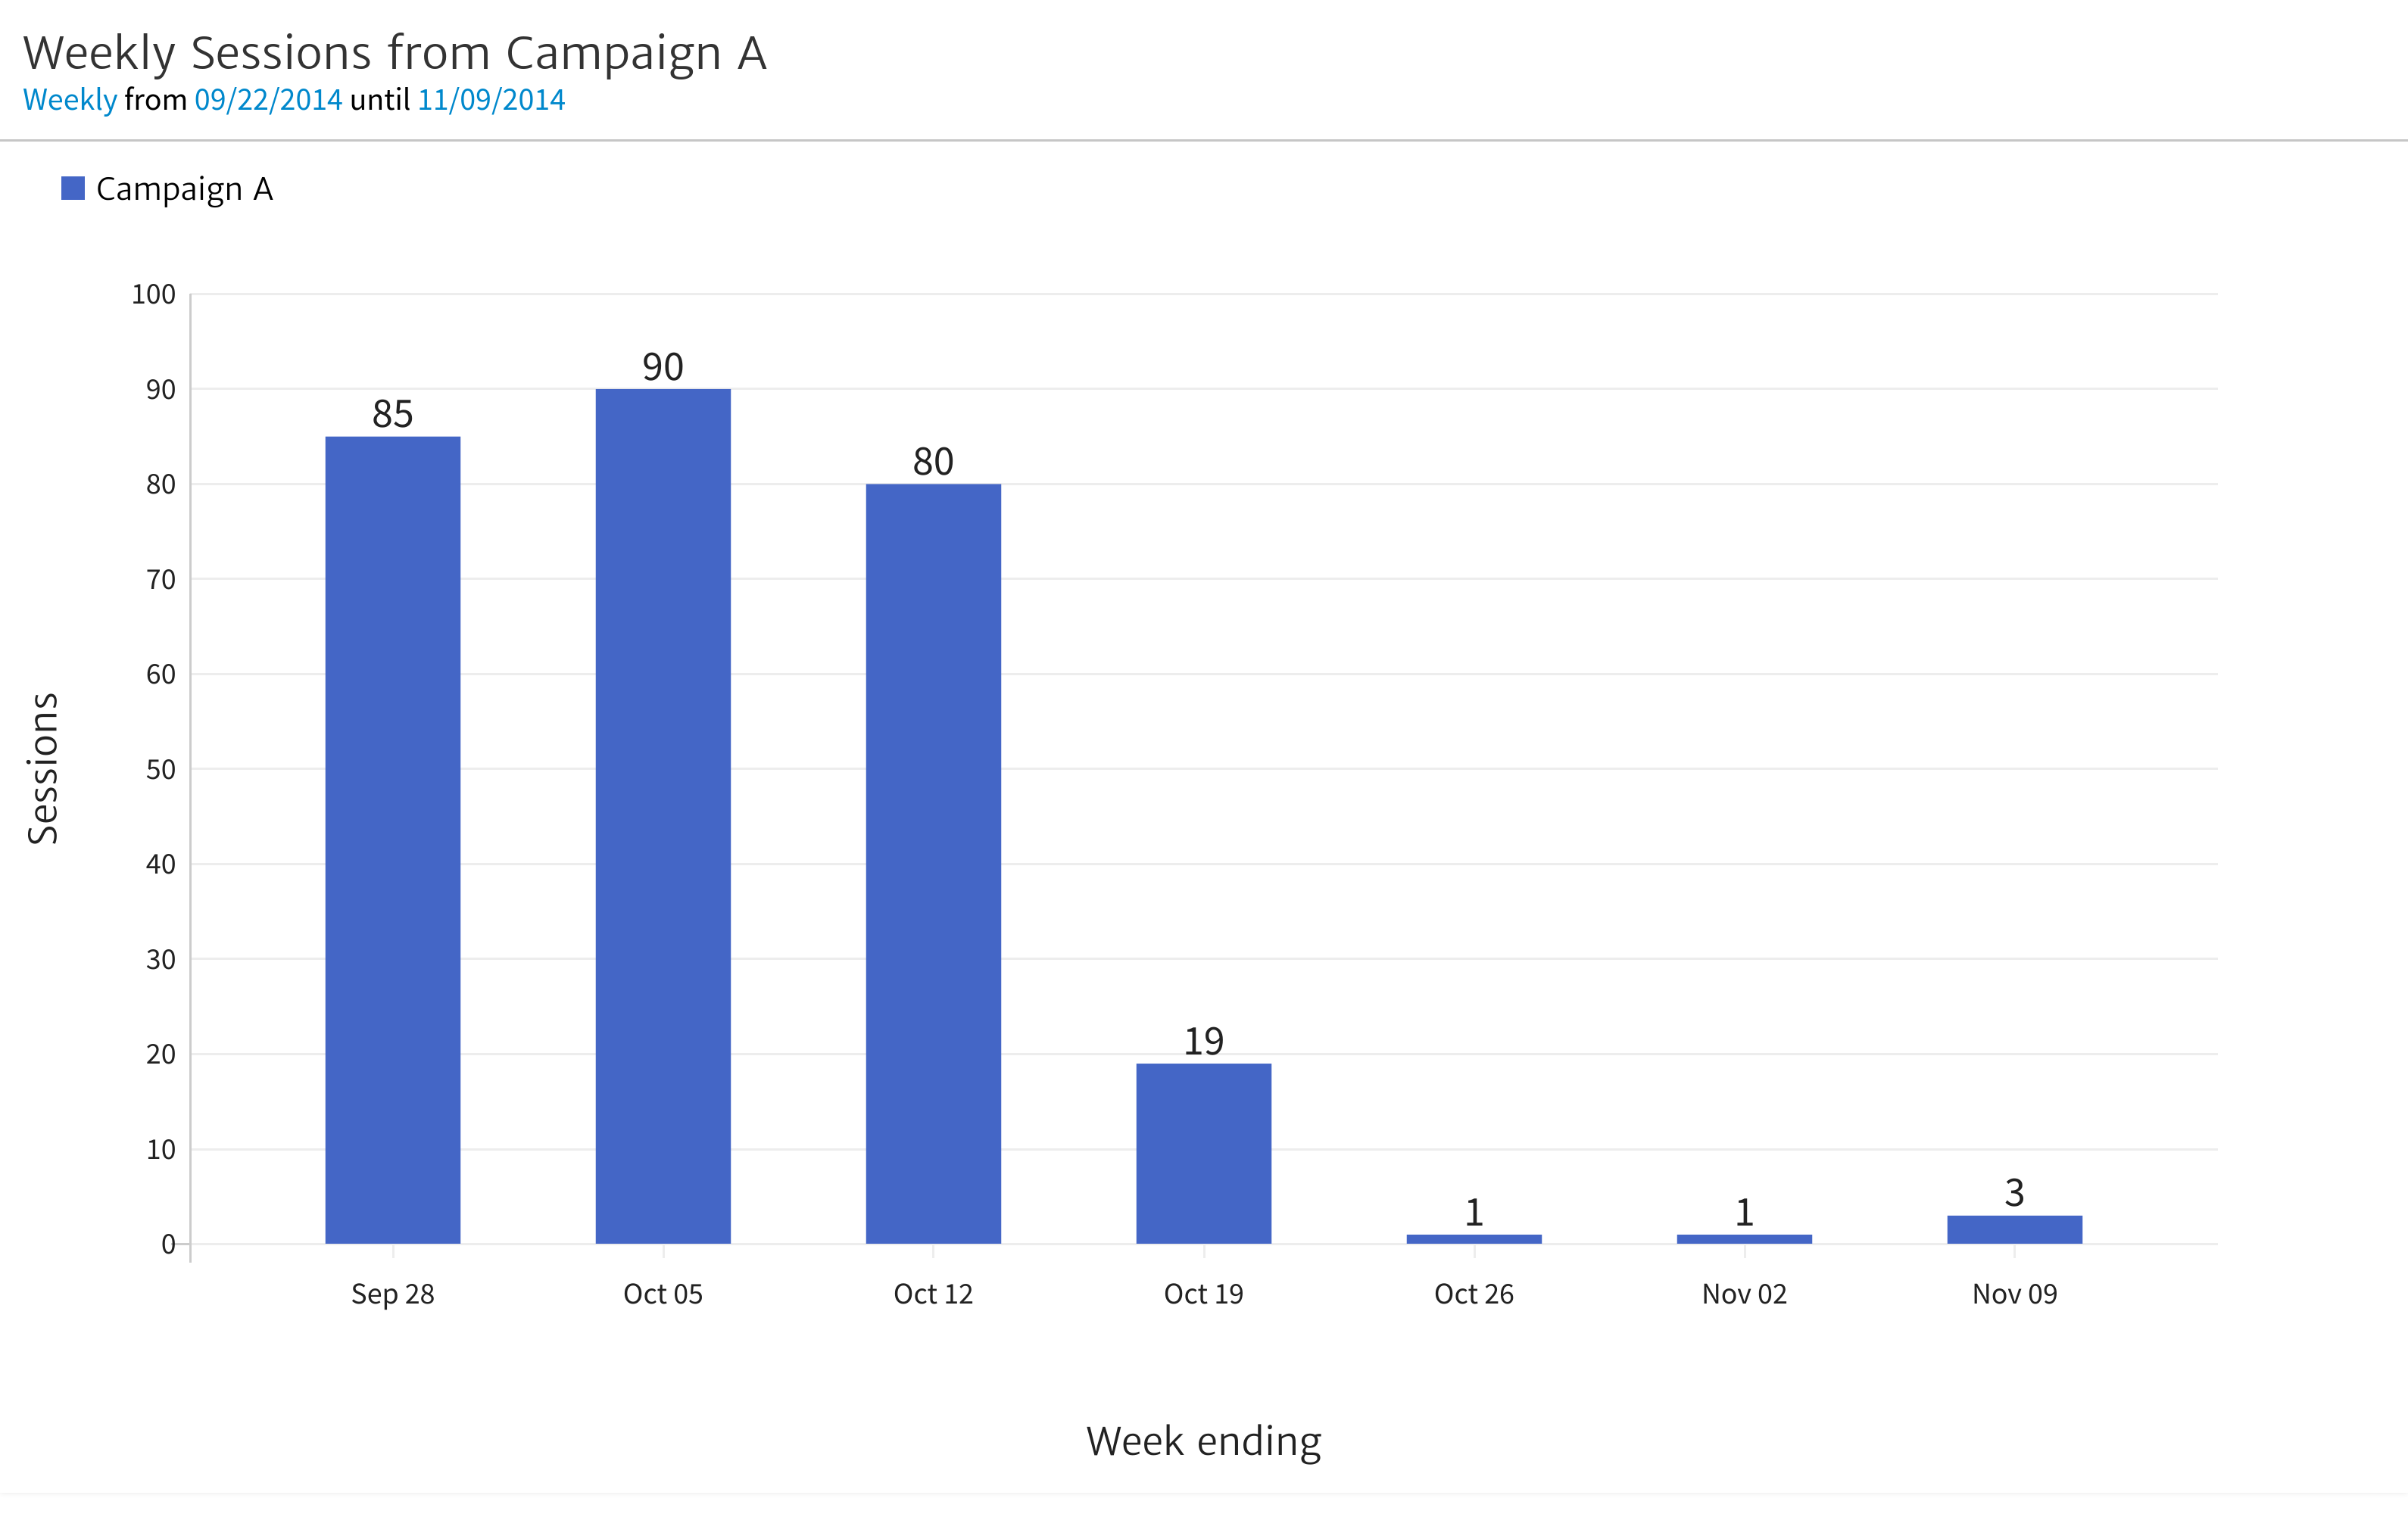 Weekly Sessions from Campaign A